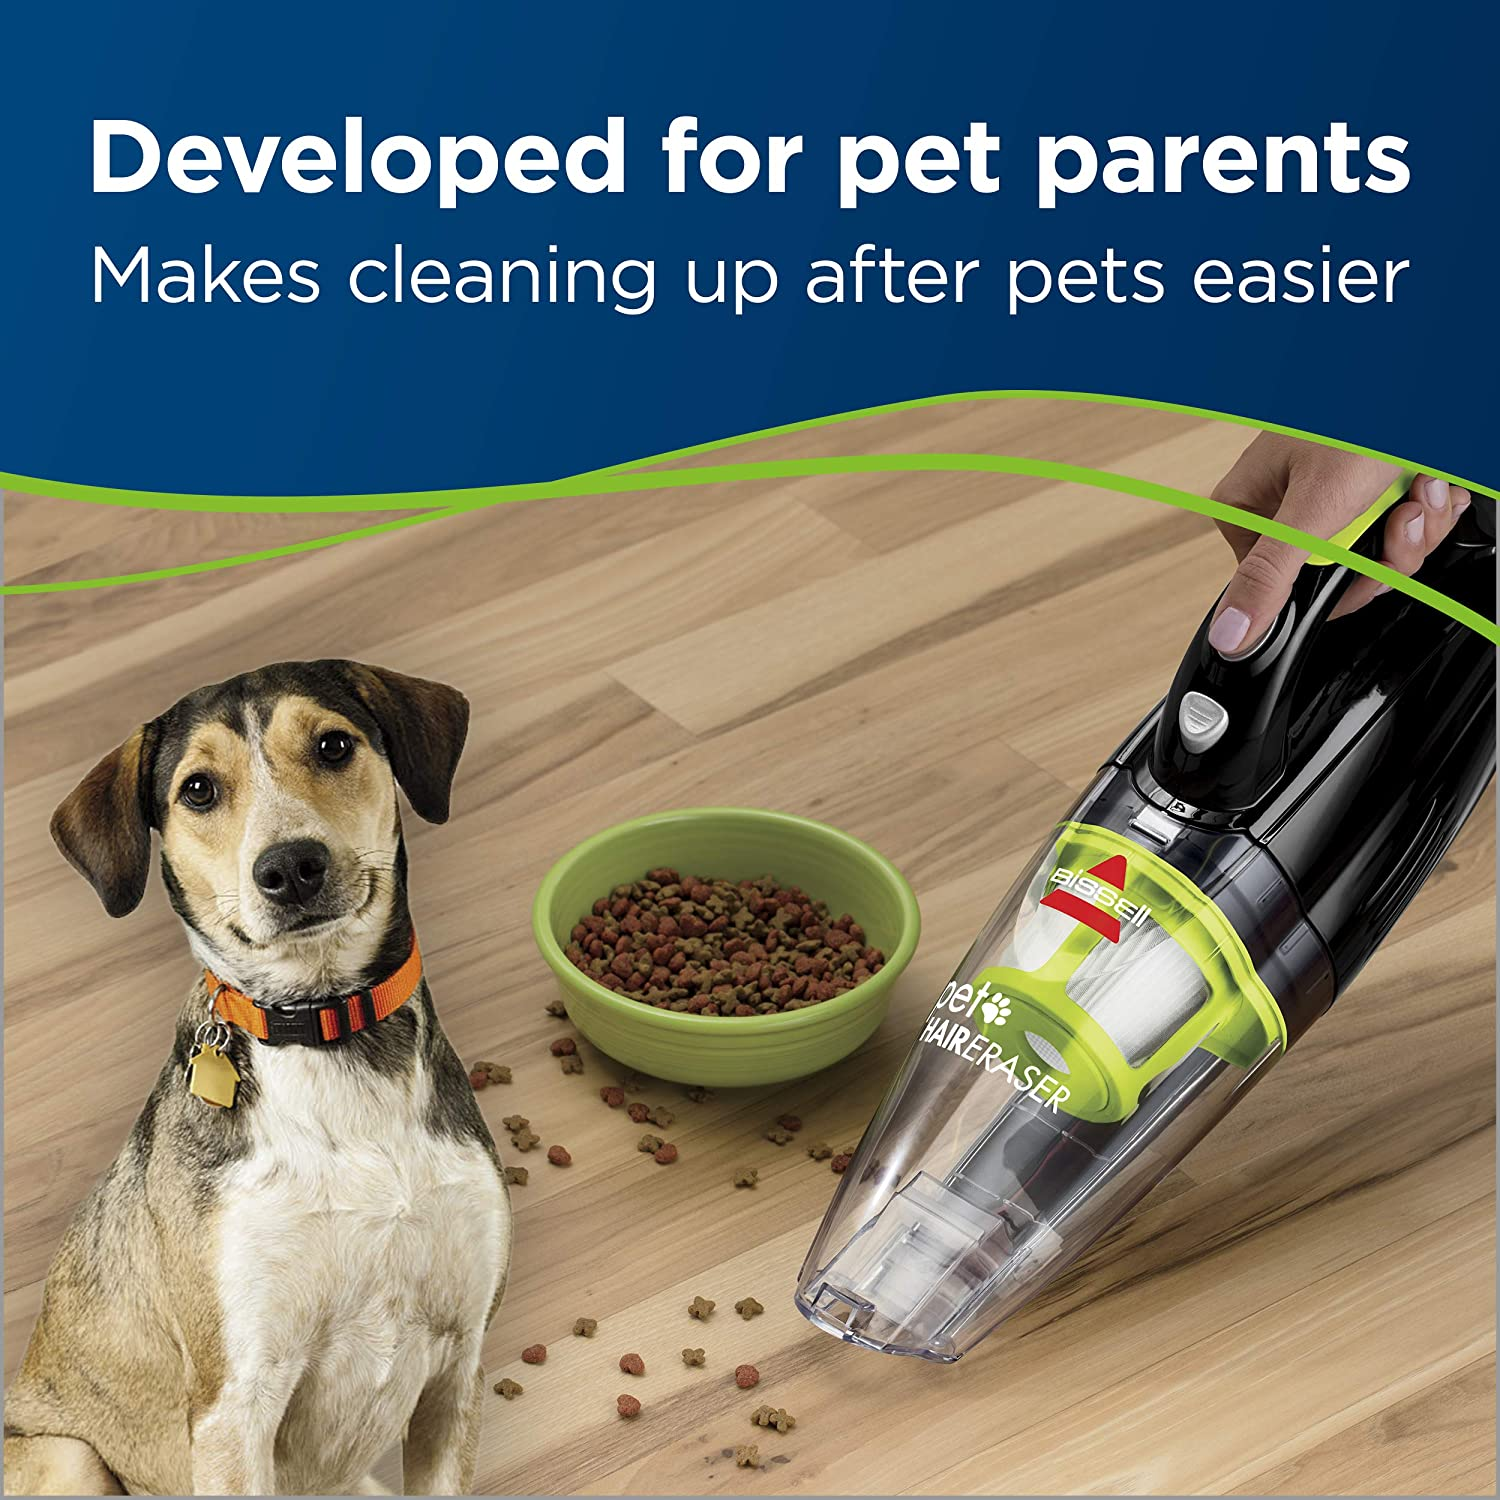 BISSELL Pet Hair Eraser Review